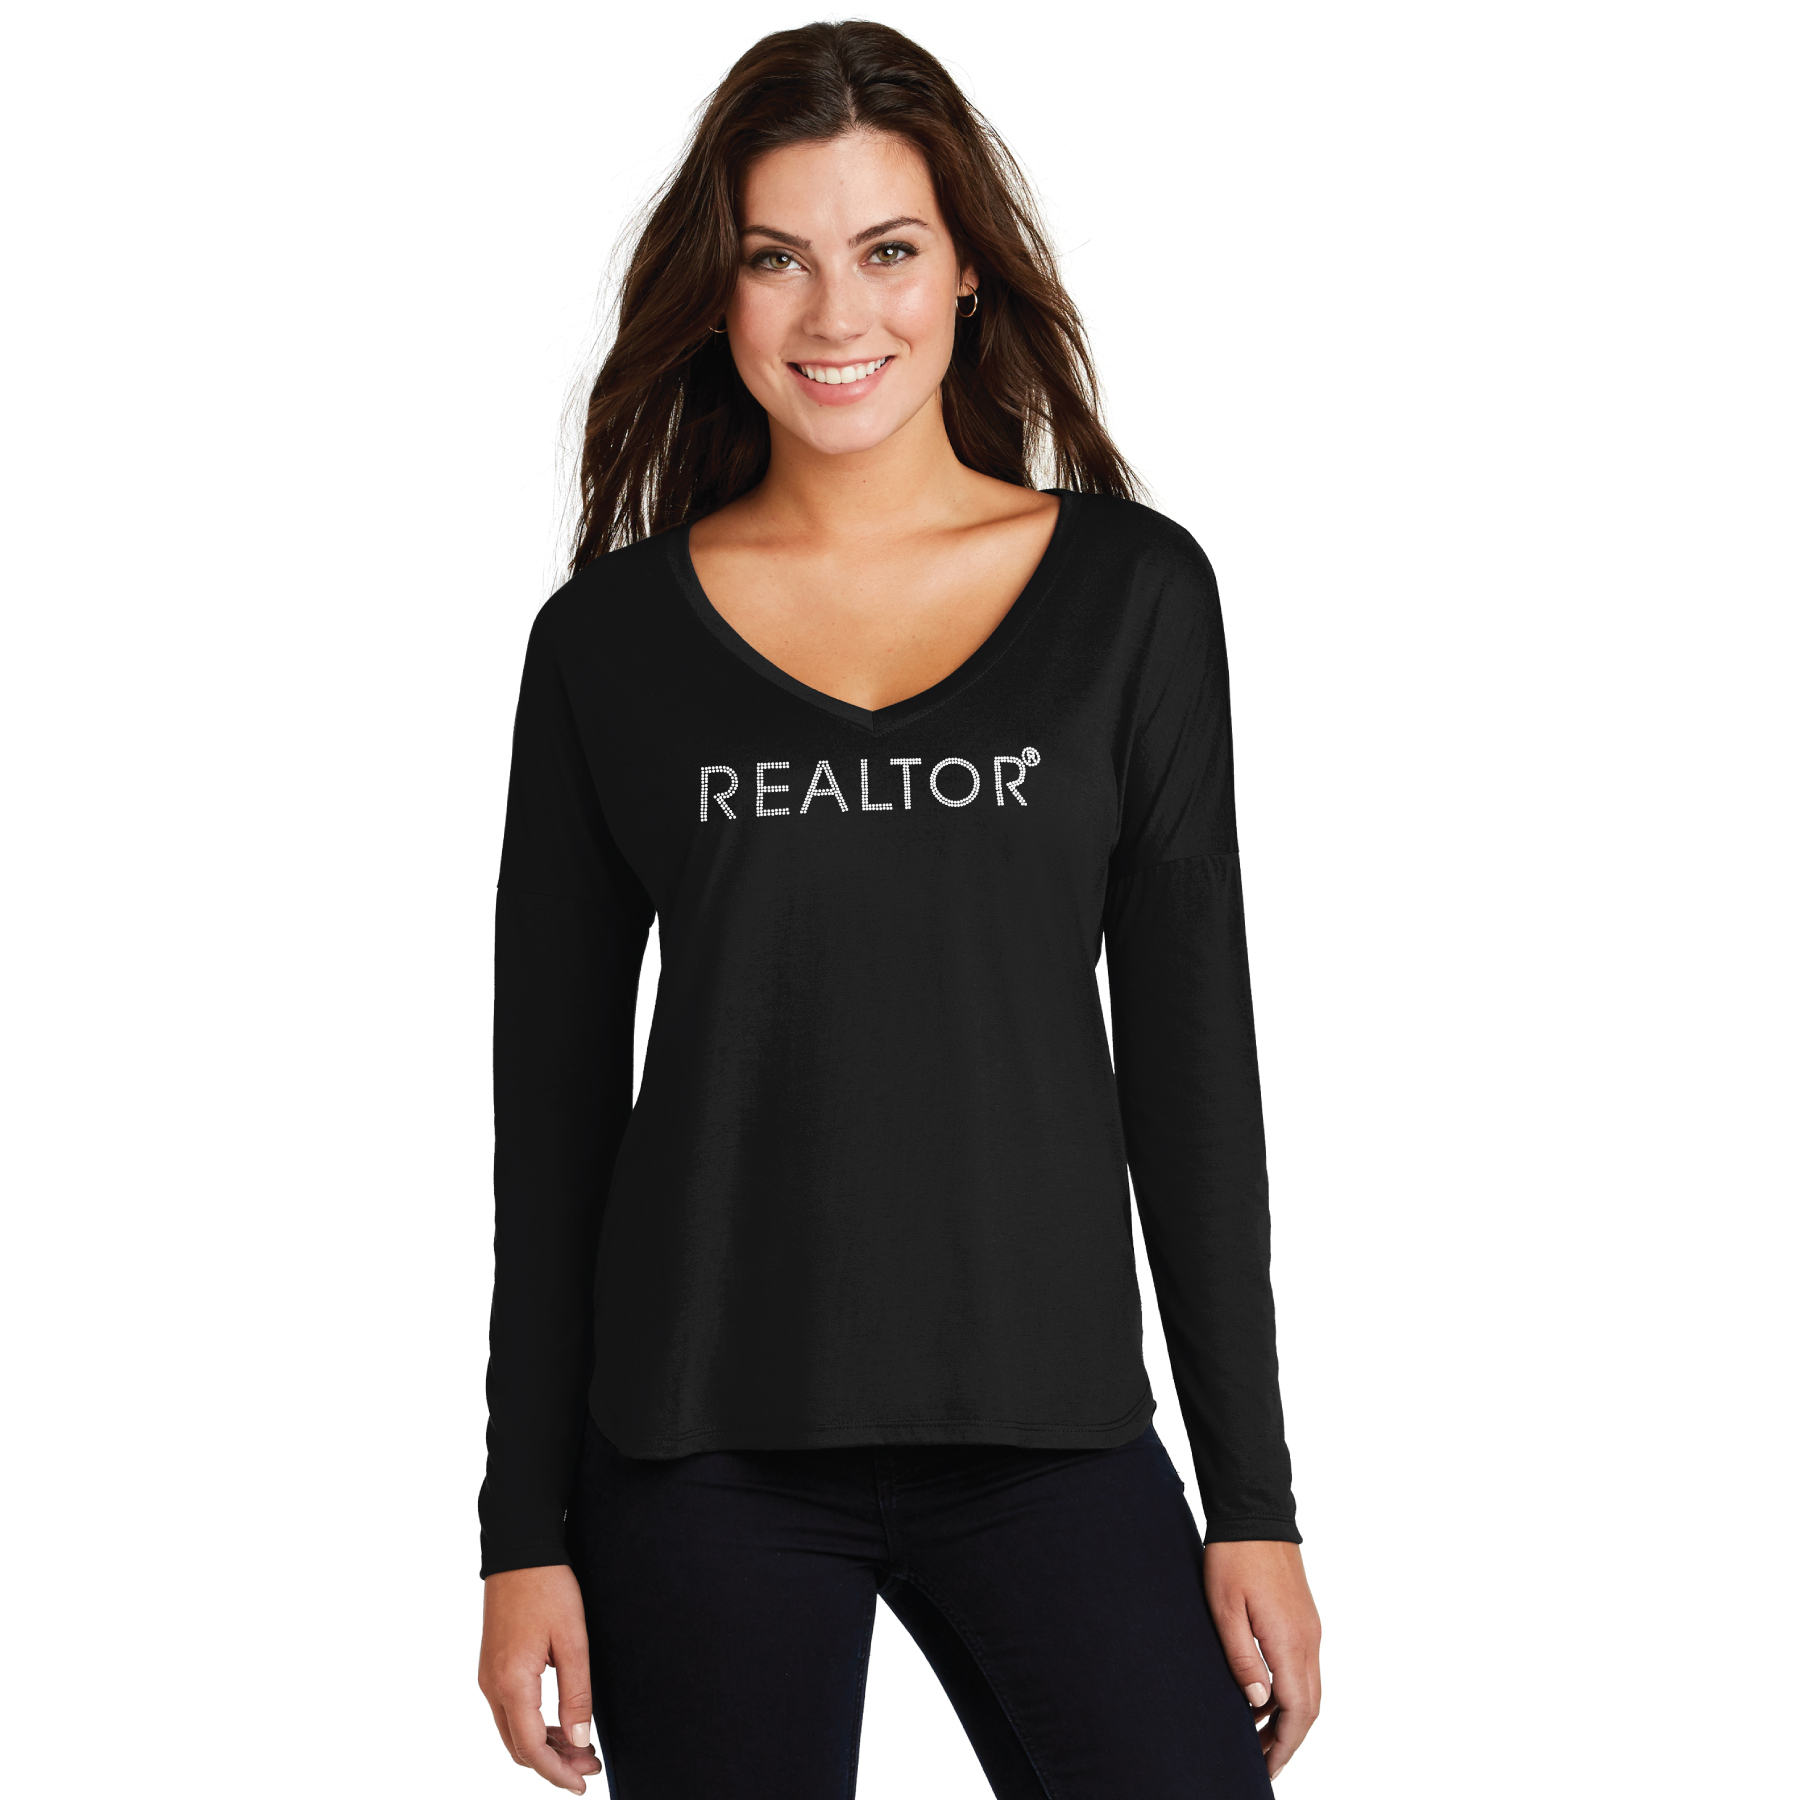 Ladies Drapey Long Sleeve Tee BLING ladies, drapey, longs, sleeves, rhinestones, blings